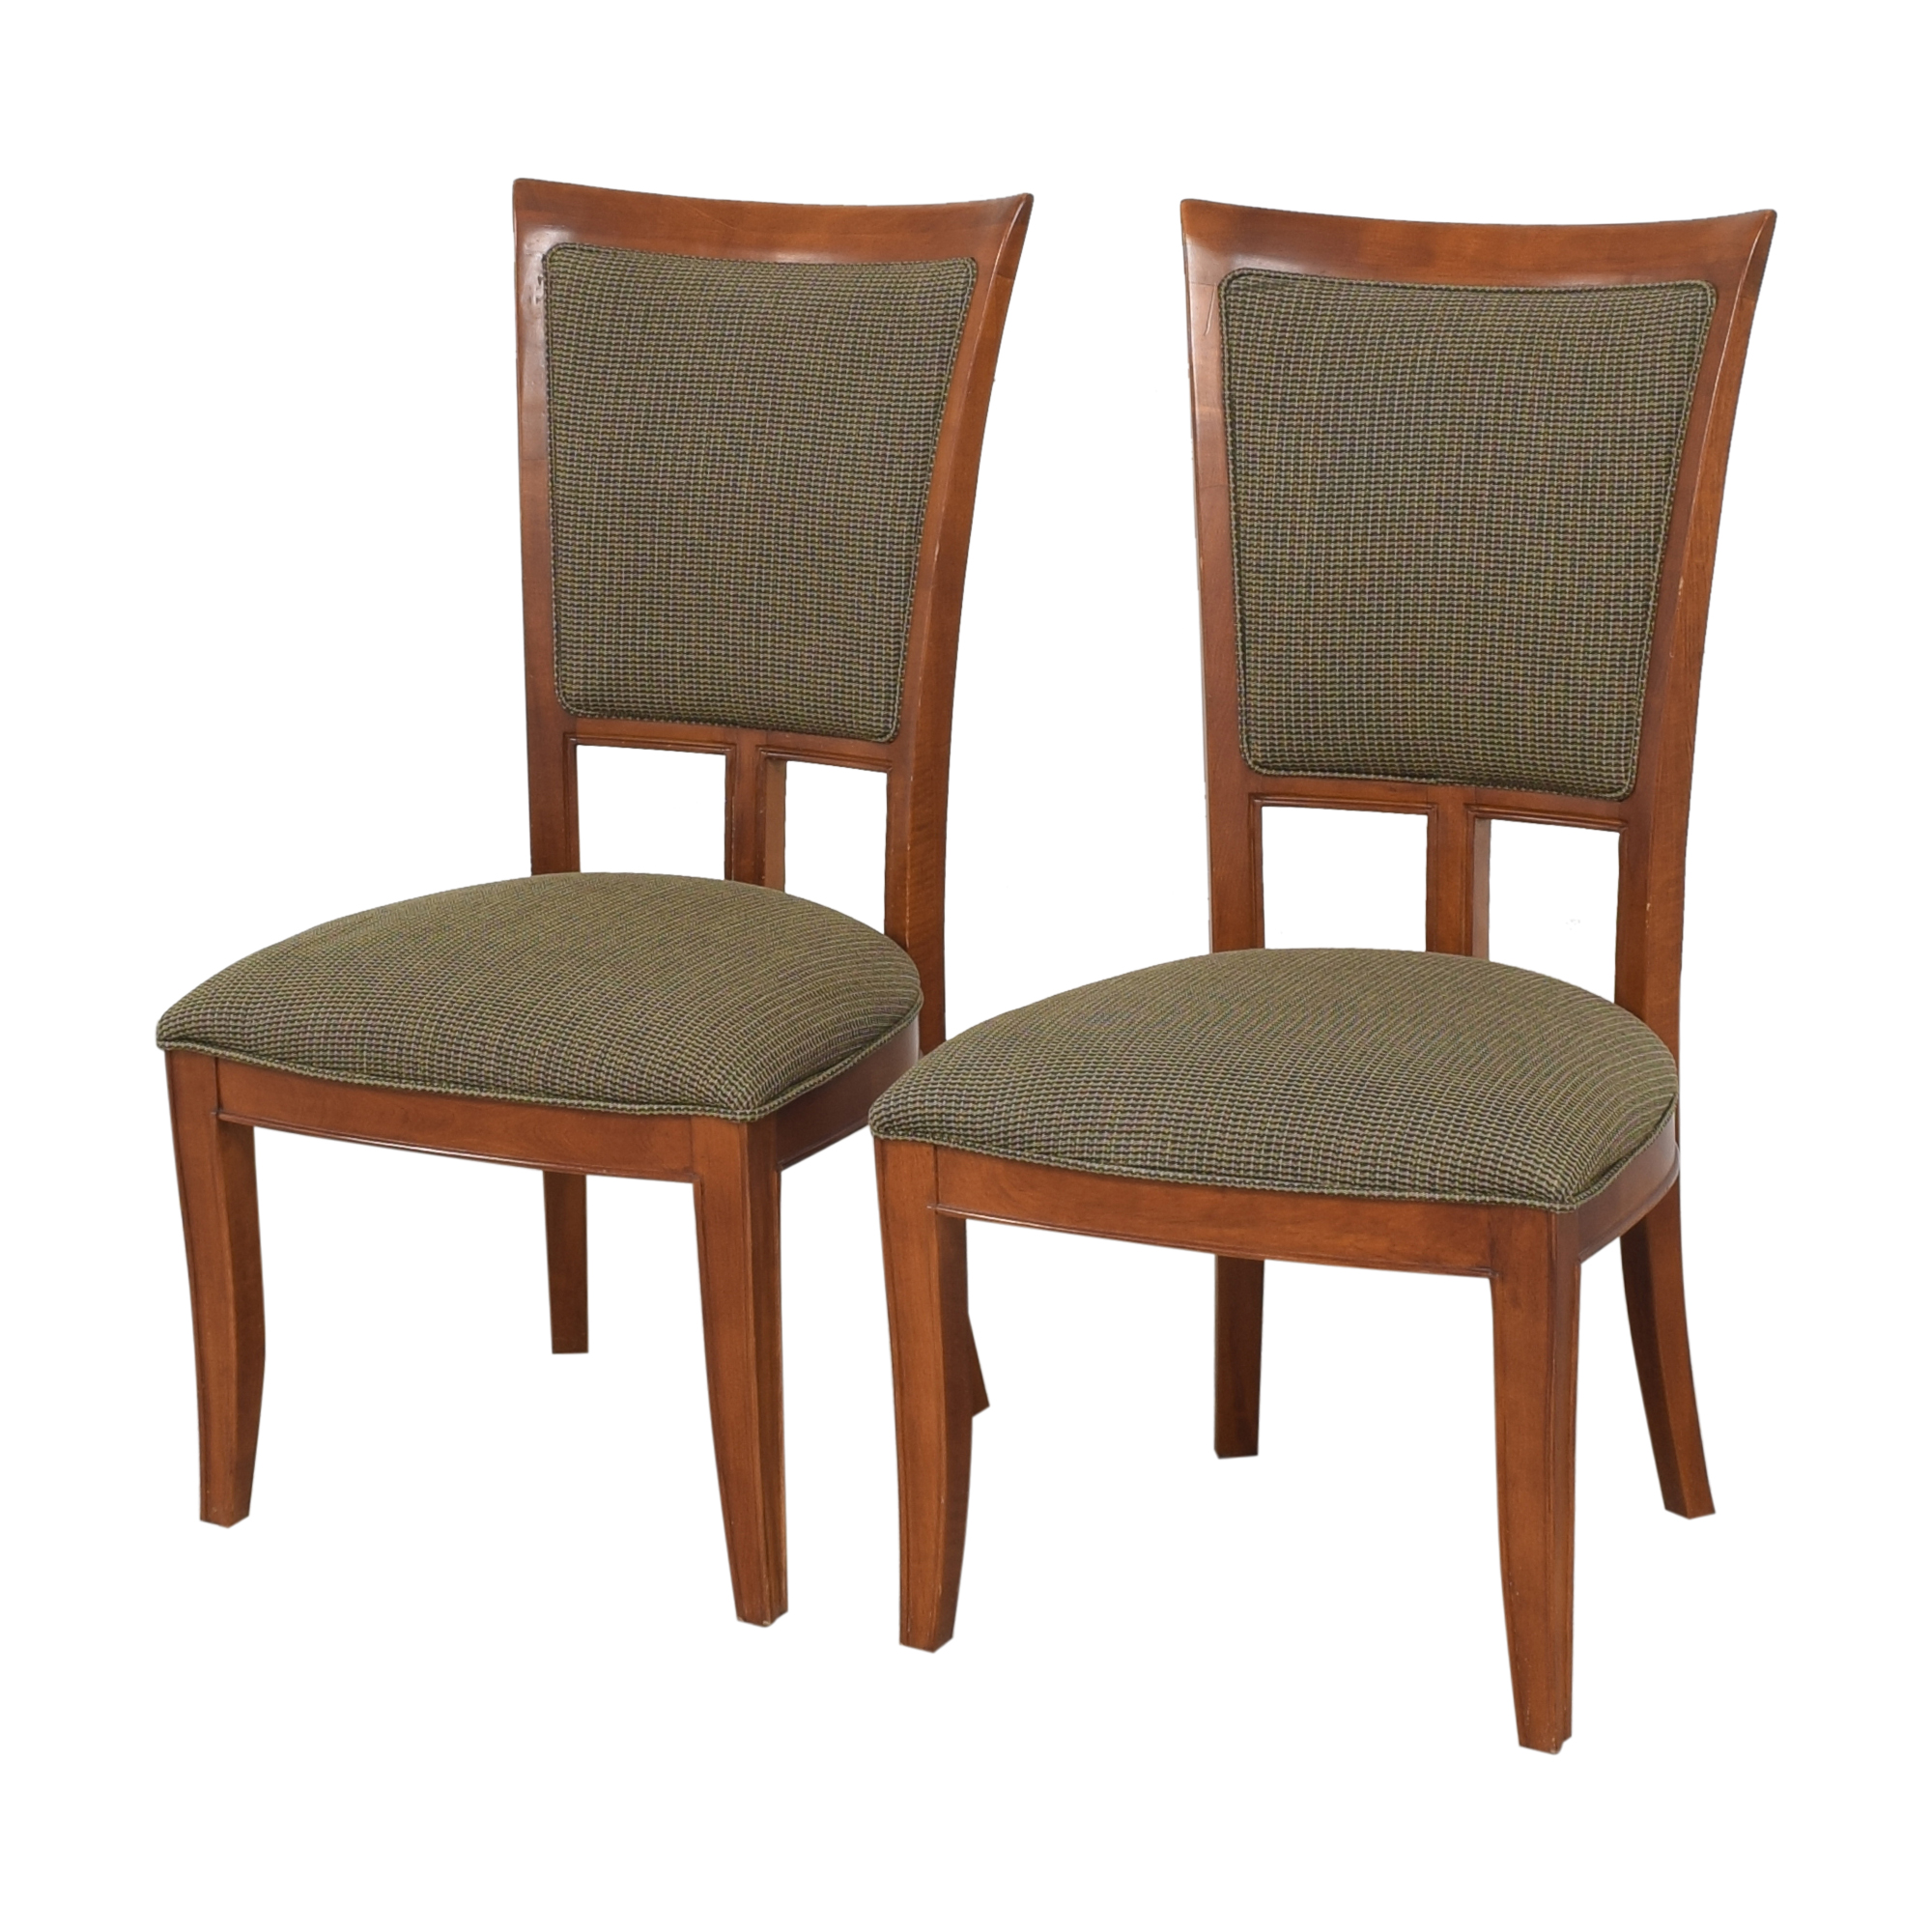 buy Stanley Furniture Stanley Furniture Upholstered Dining Chairs online